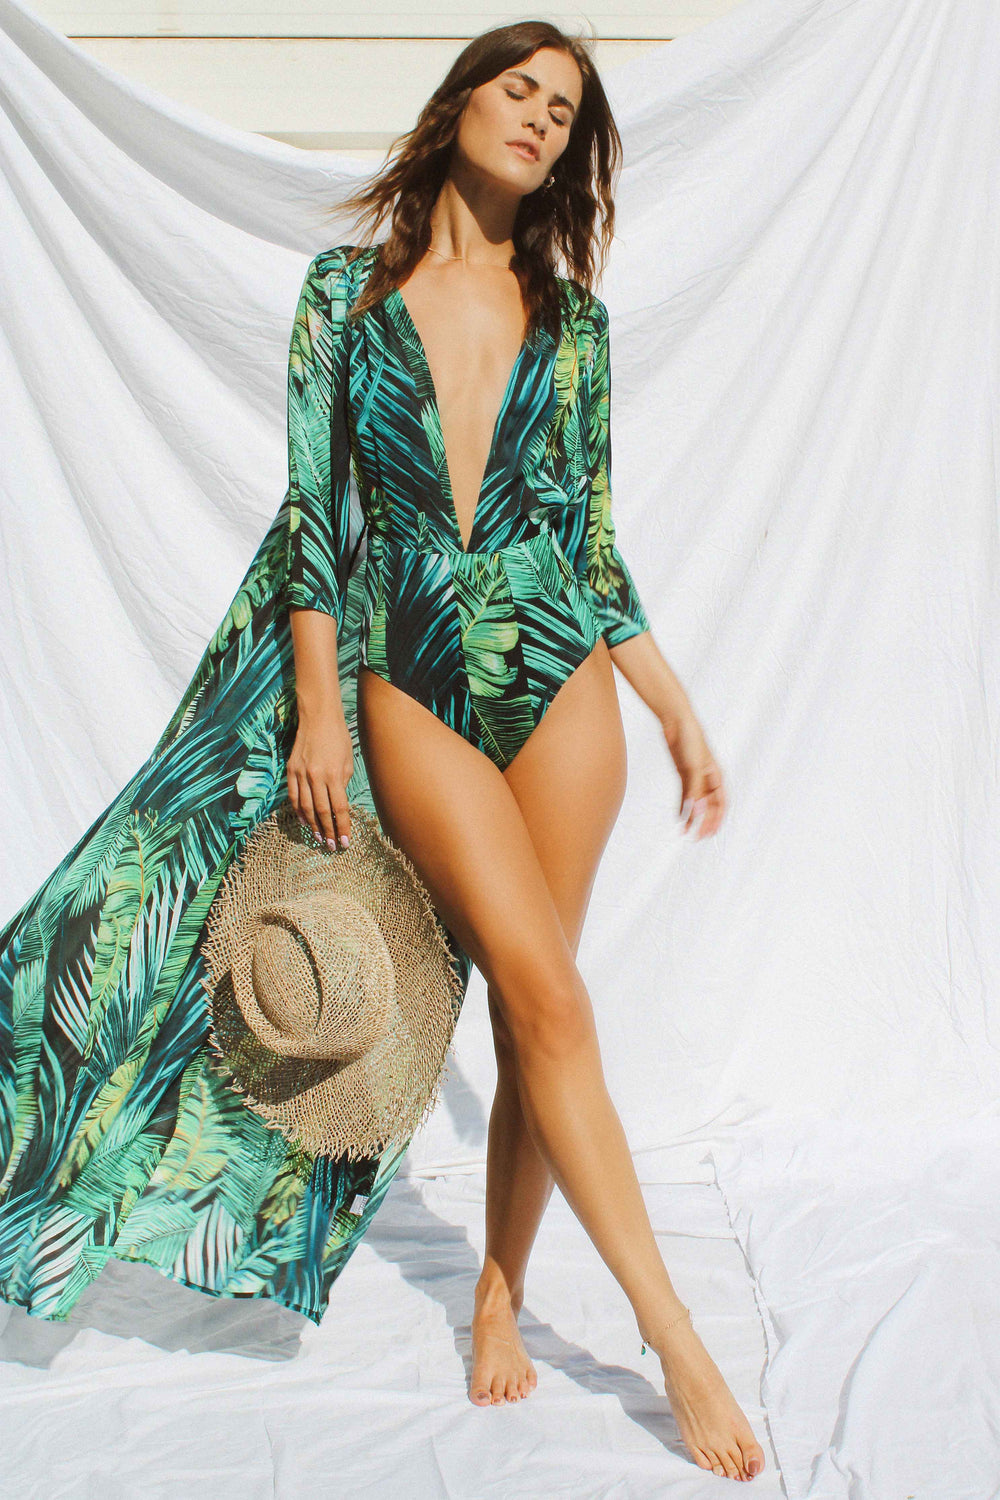 SOFIA BEACH DRESS | Women's Online Shopping | CHICLEFRIQUE